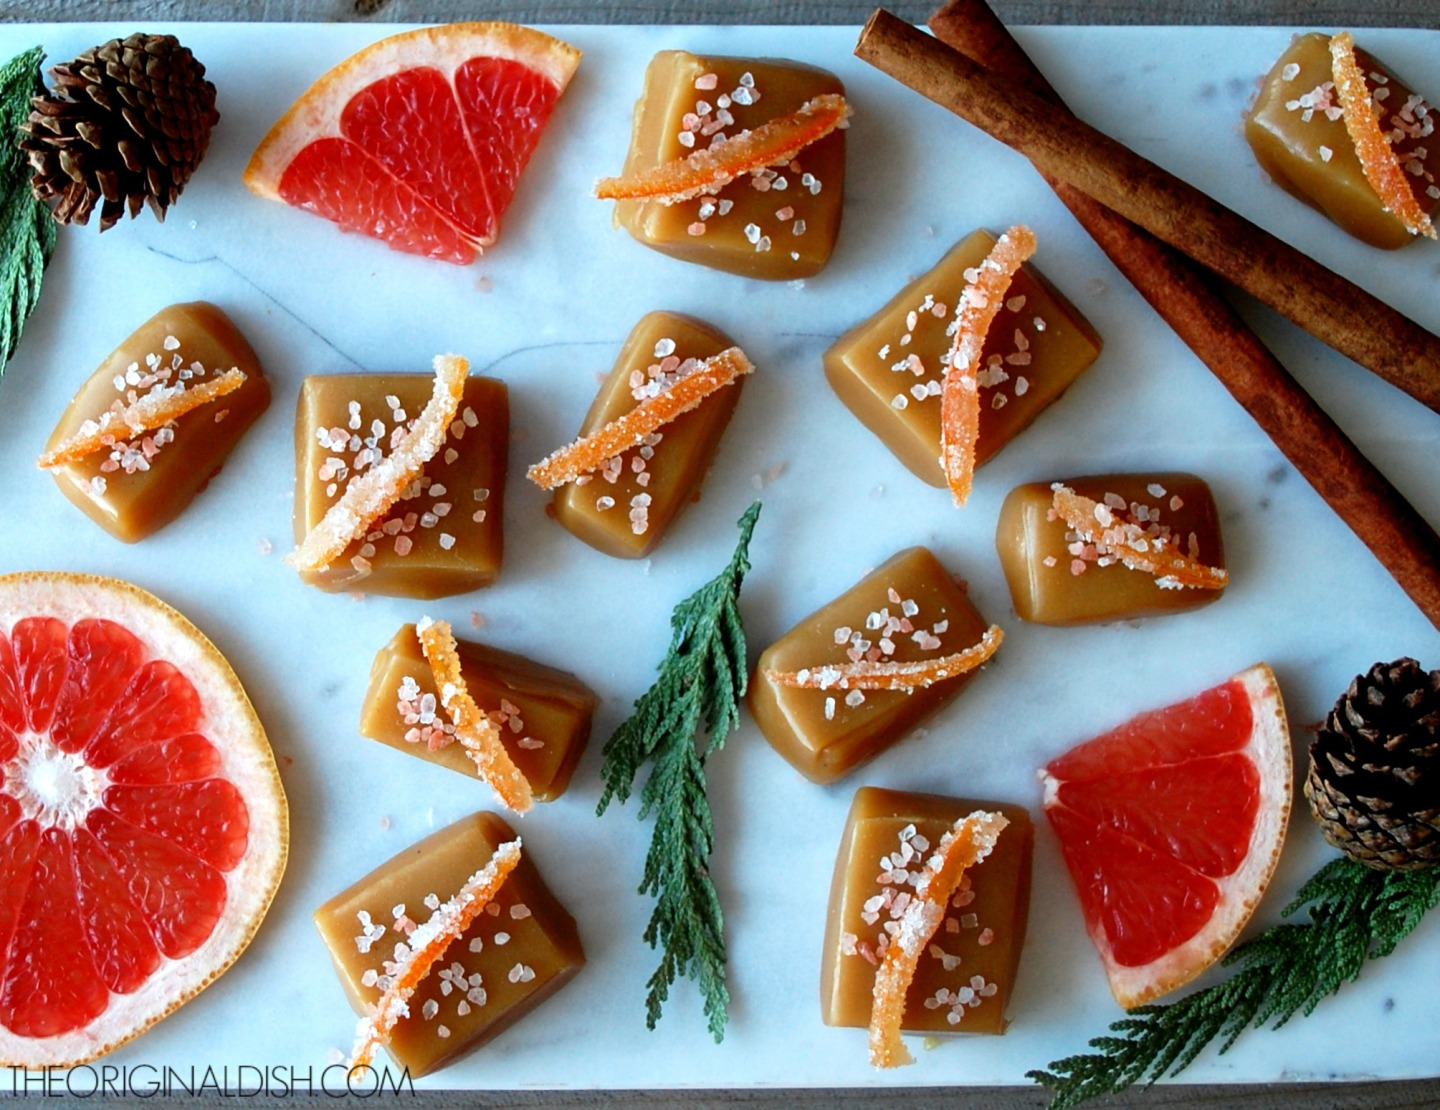 Cardamom-Honey Caramels with Candied Grapefruit